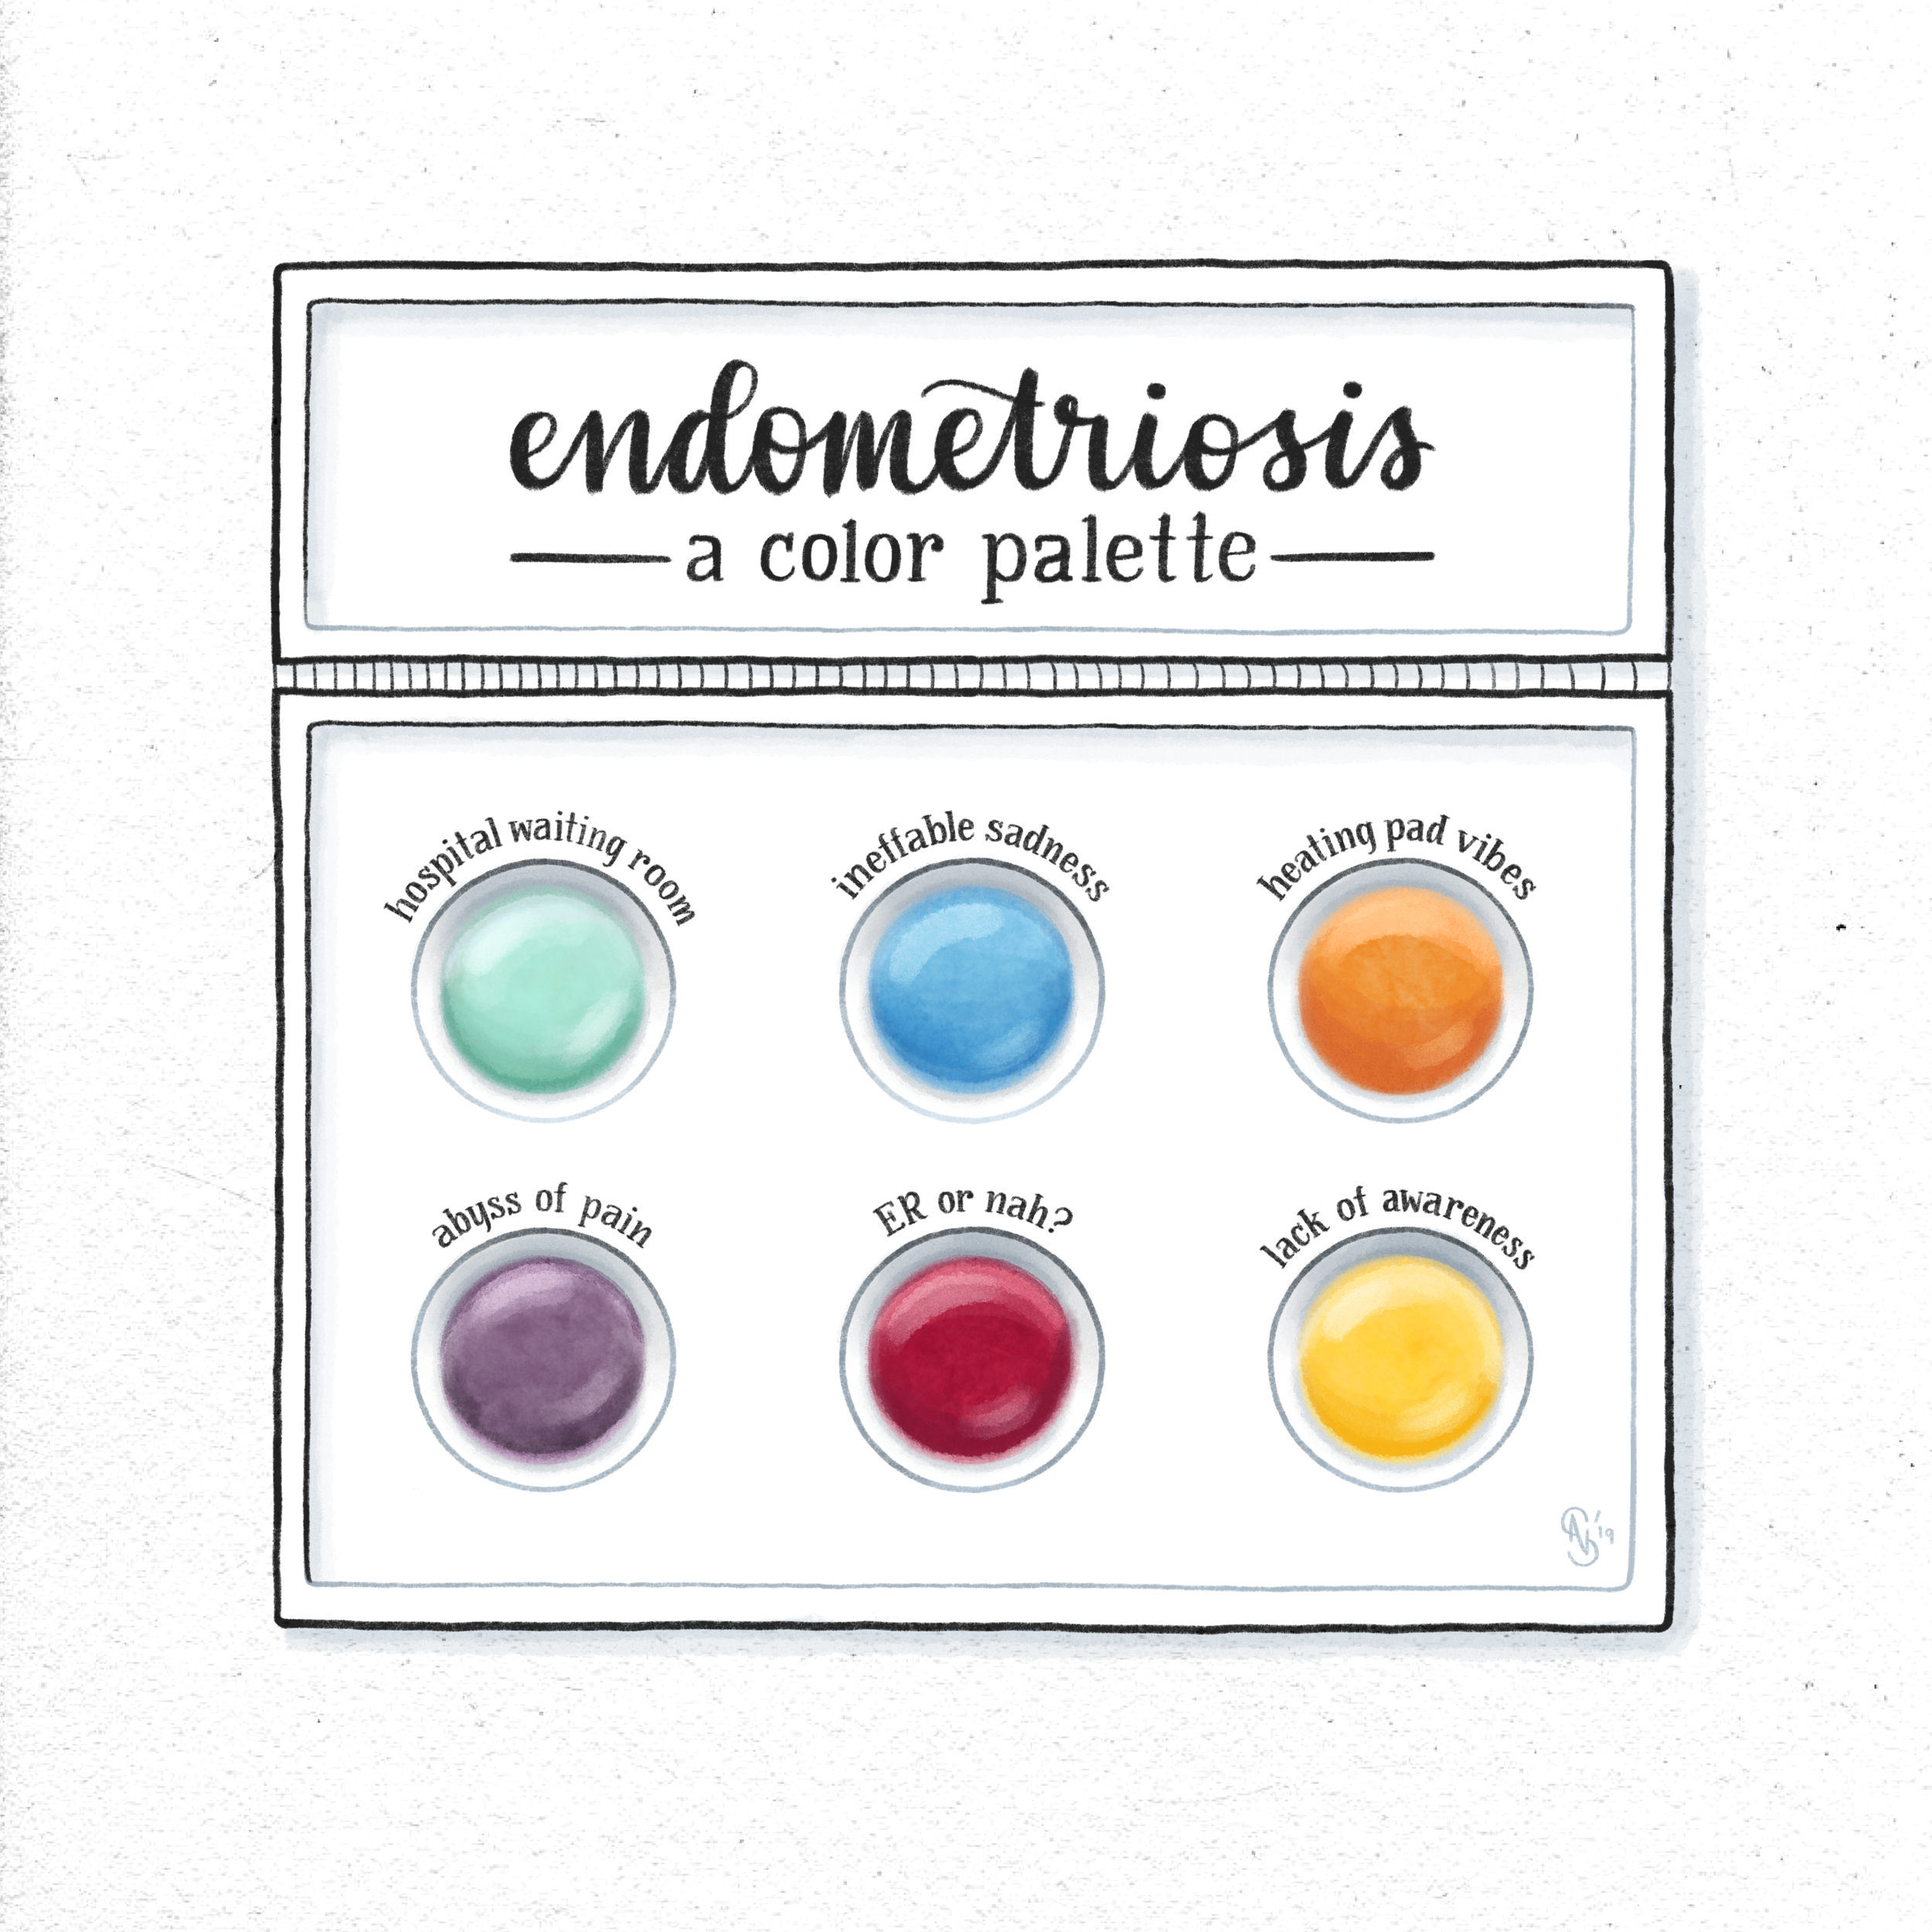 Endometriosis color palette